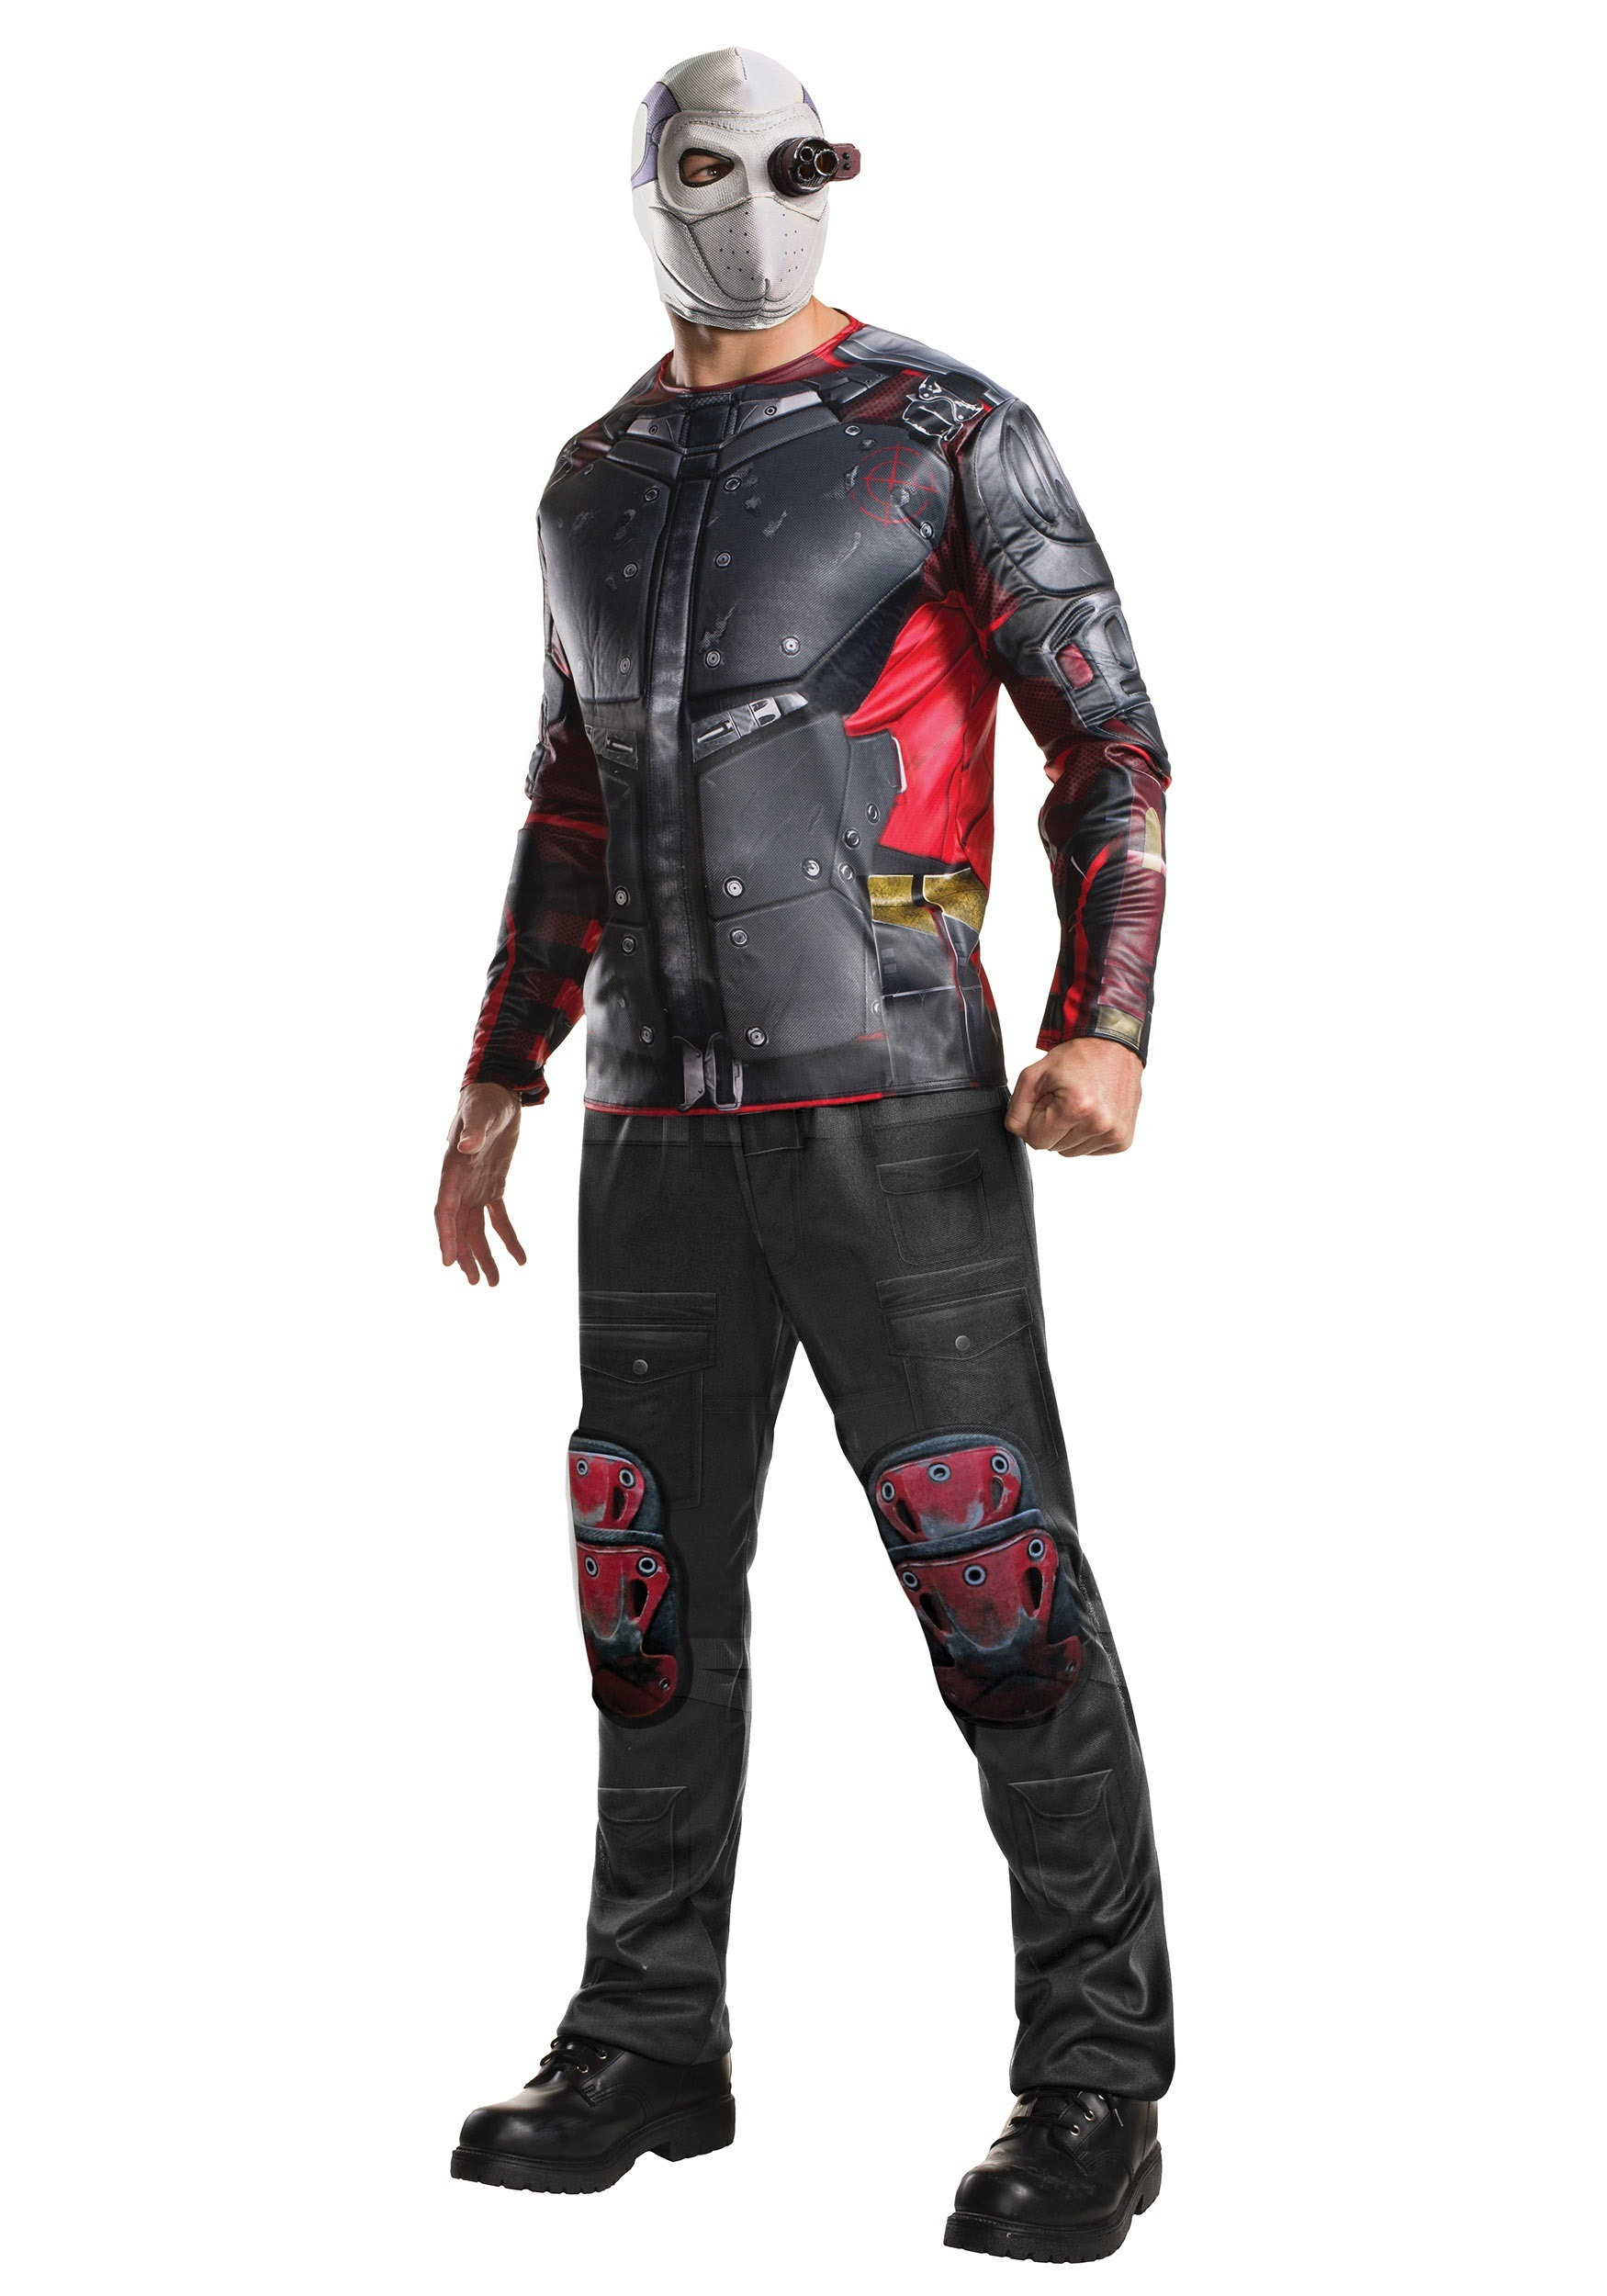 Image result for deadshot costume idea